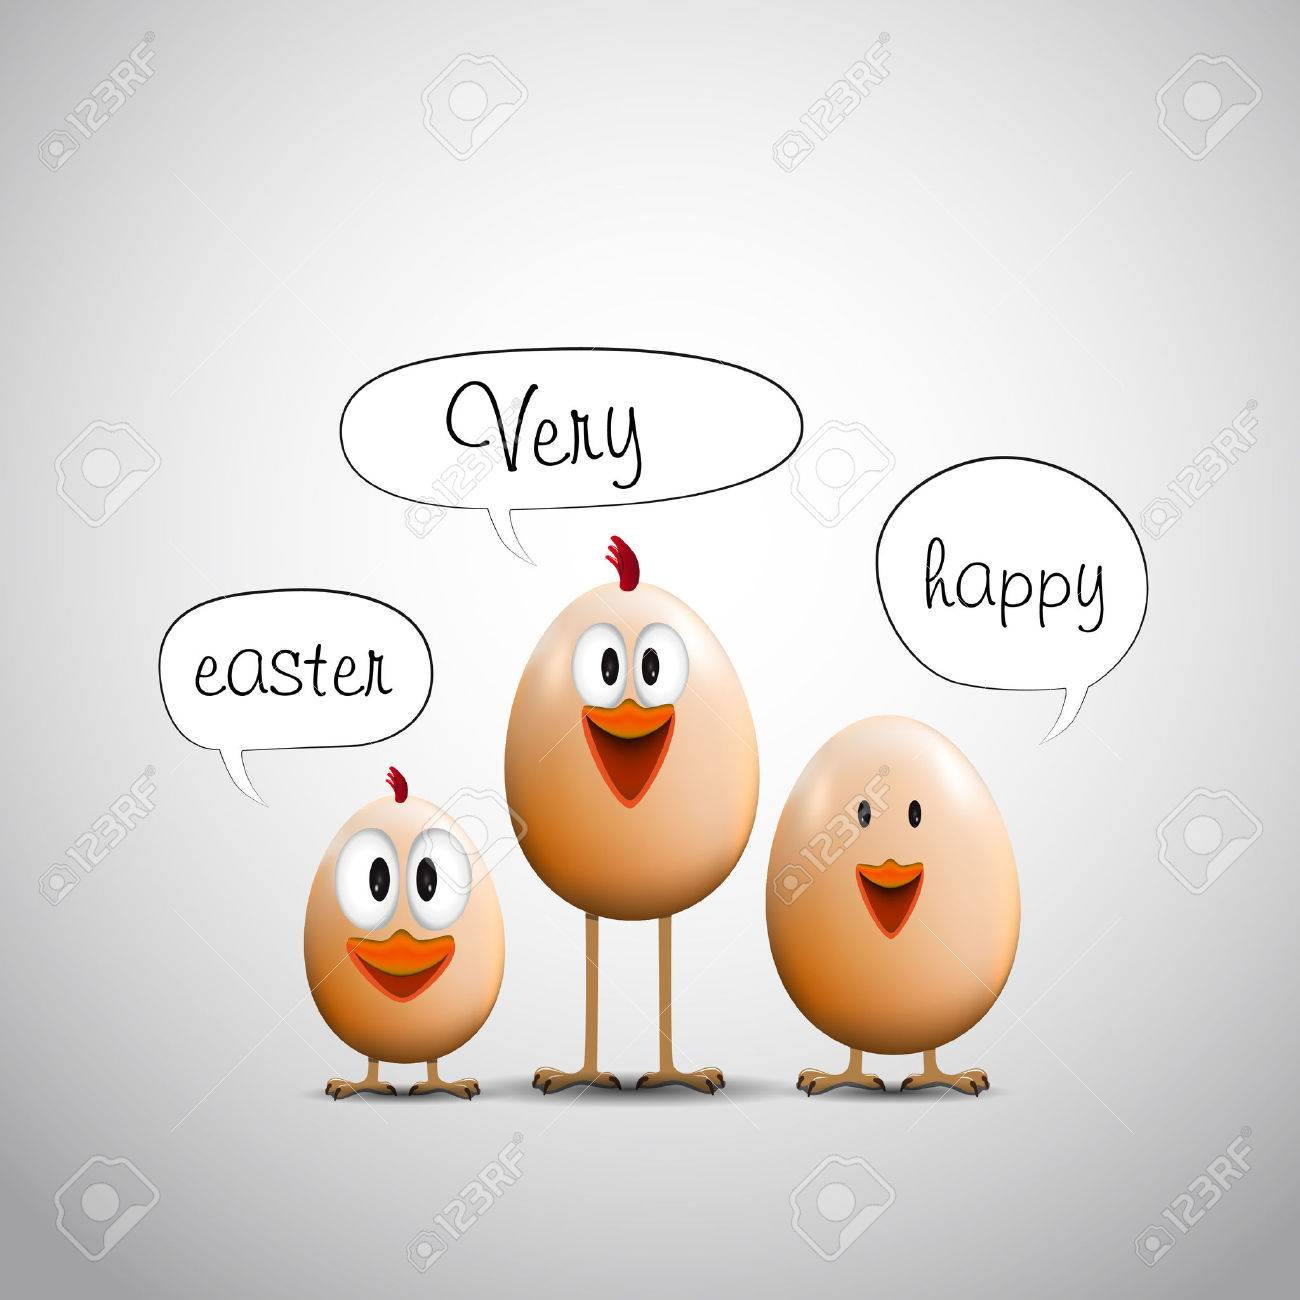 Funny easter eggs chicks happy easter card royalty free cliparts funny easter eggs chicks happy easter card stock vector 36618046 kristyandbryce Choice Image